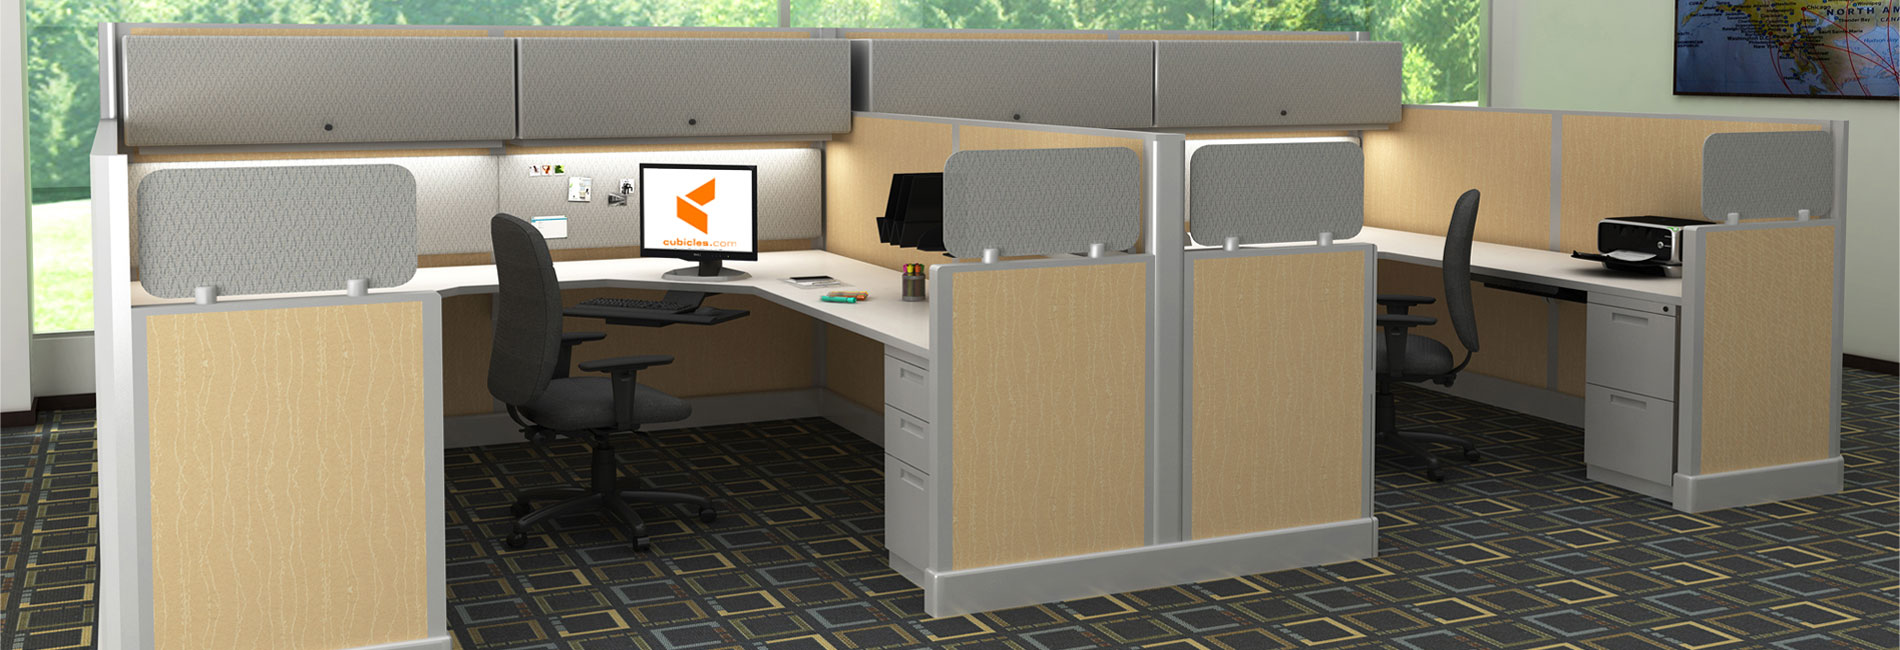 office furniture  cubicles  filing  seating  and so much more